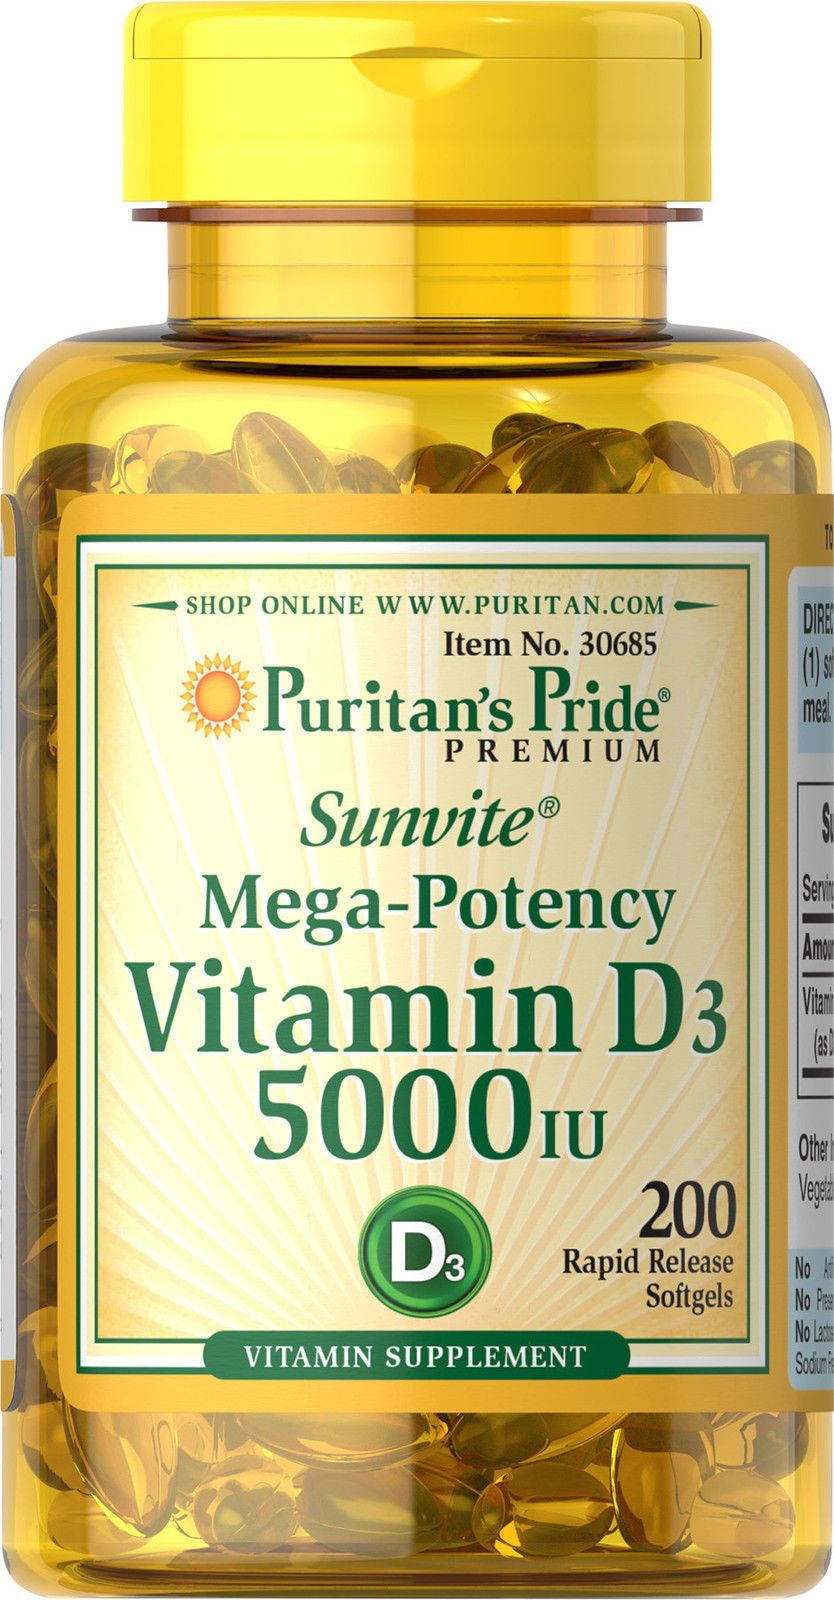 Puritans Pride Mega Potency Vitamin D3 5000 Iu 200 Softgels Puritan Triple Strength Joint Soother Glucosamine Chondroitin Msm 90 Caplets Description D Is Essential To The Body Because Of Its Role In Calcium Absorpt